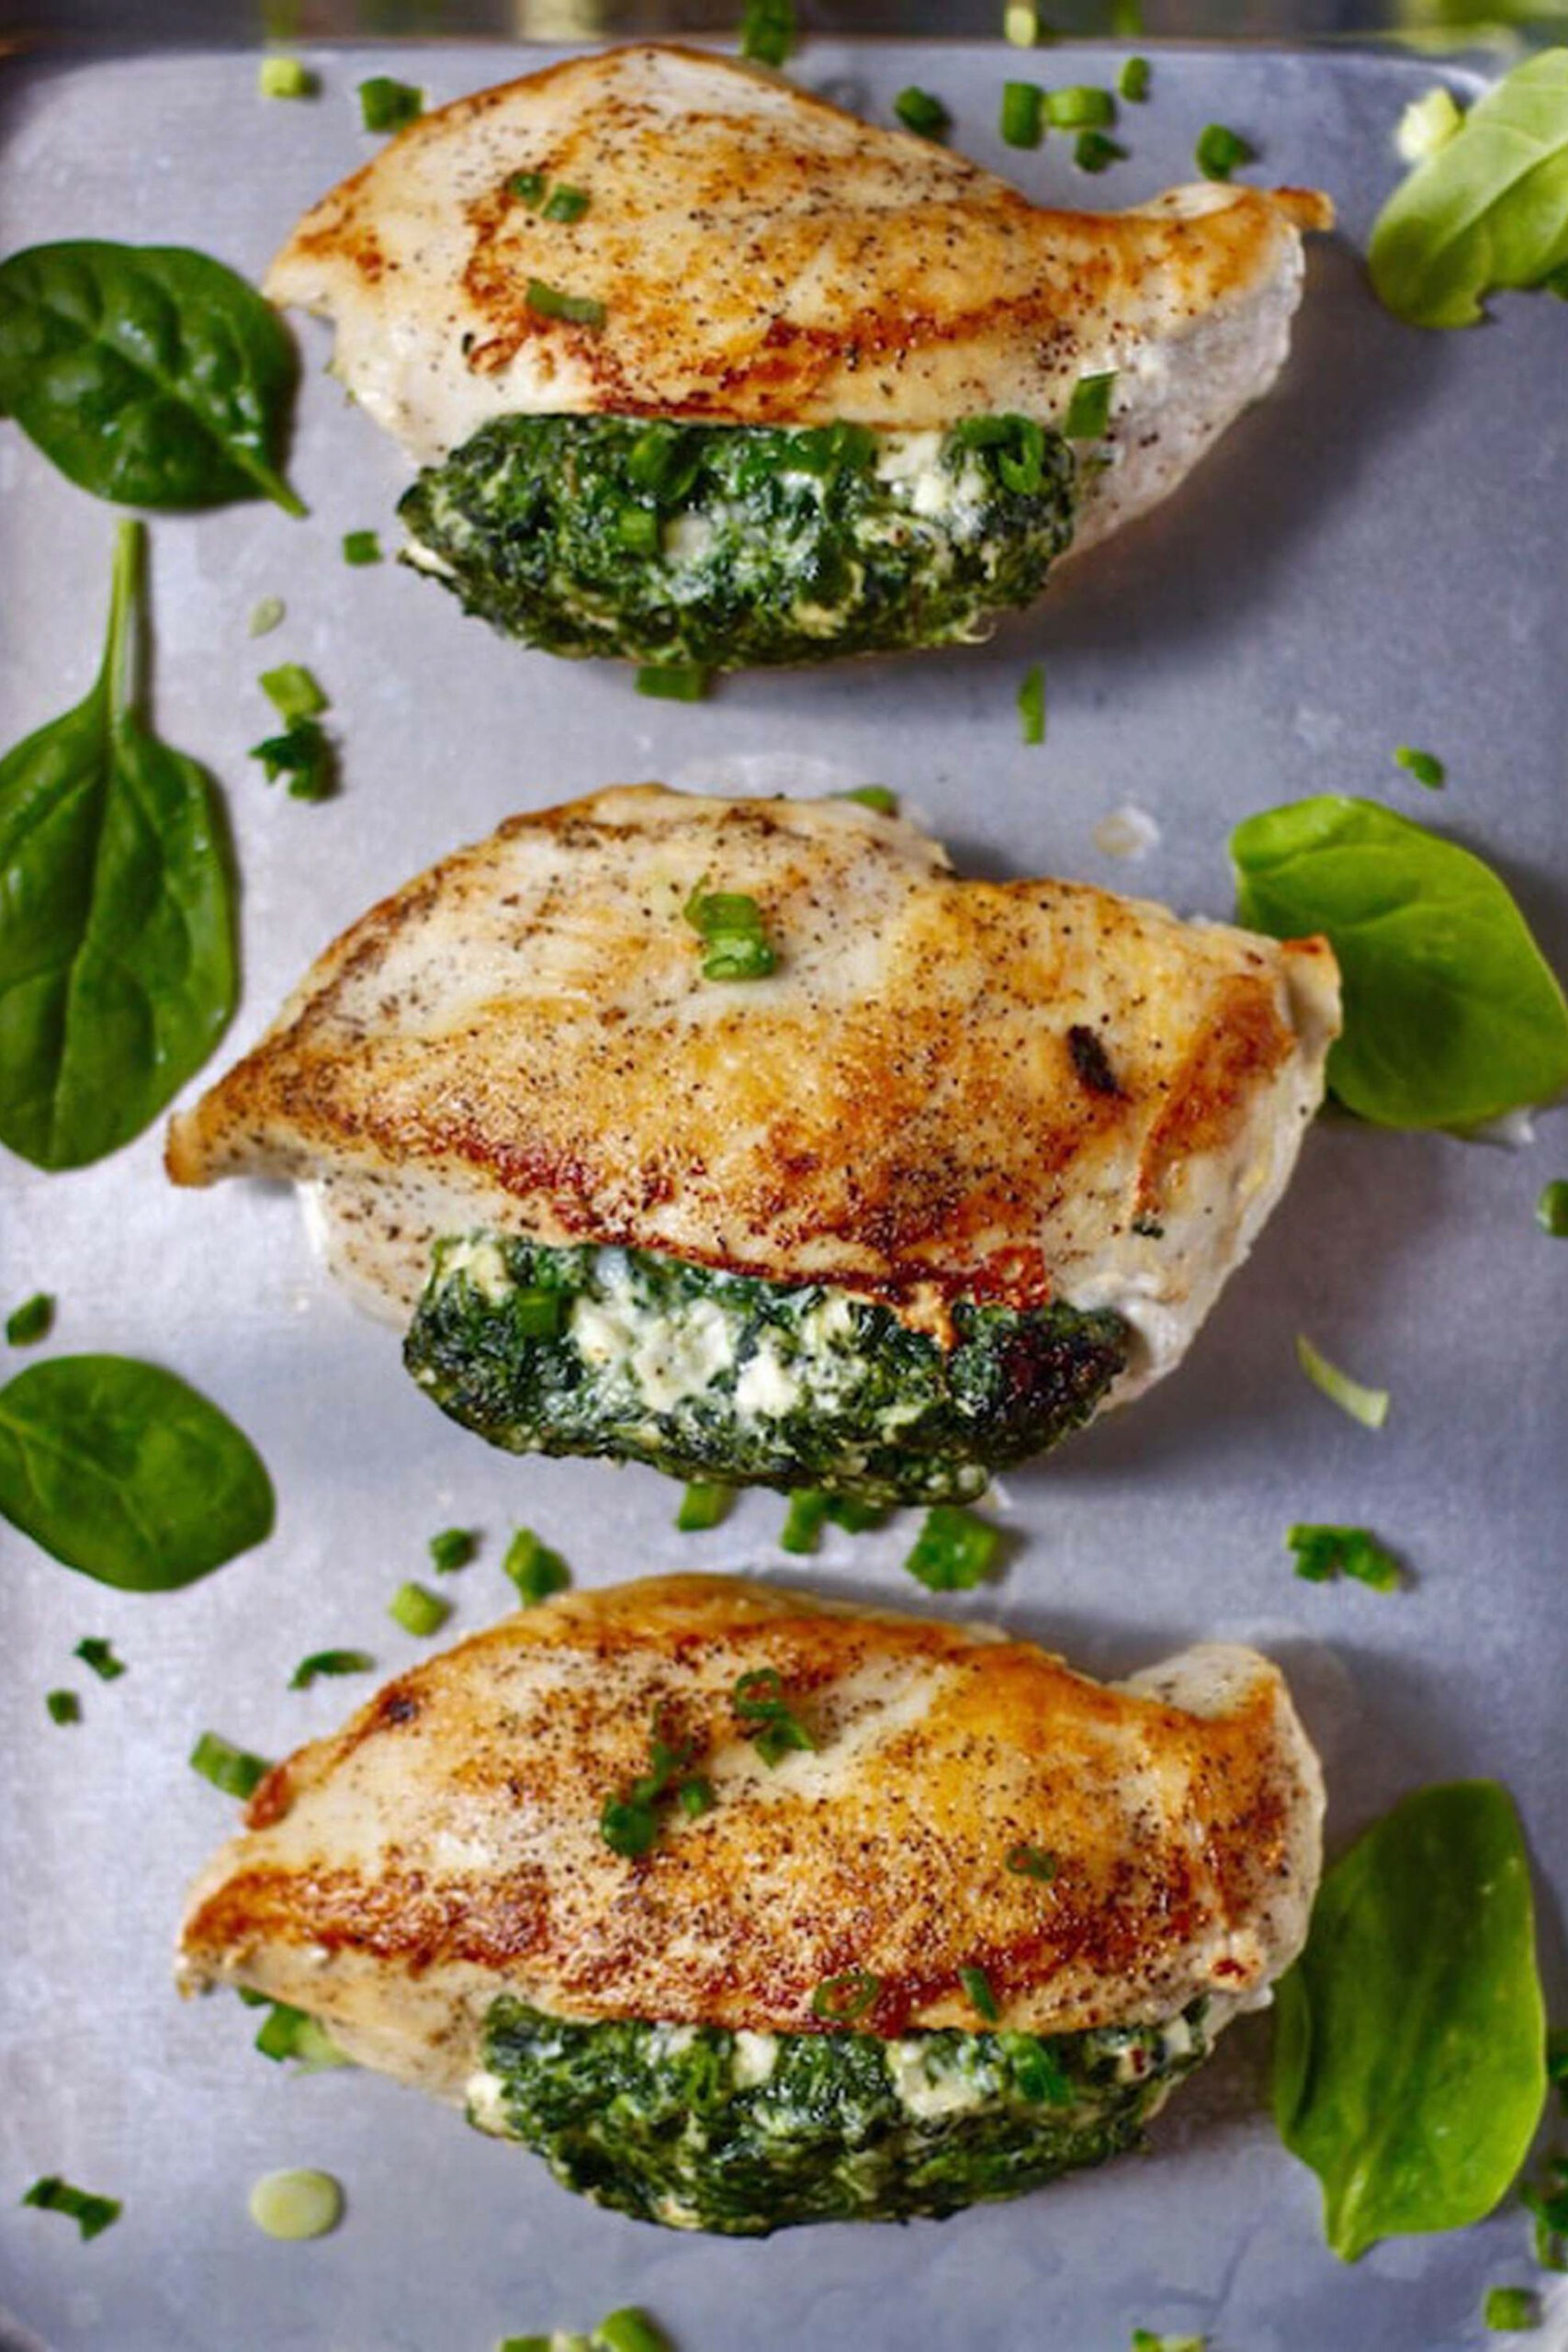 50 Easy Low-Carb Dinner Recipes - Healthy Low Carb Meals ..